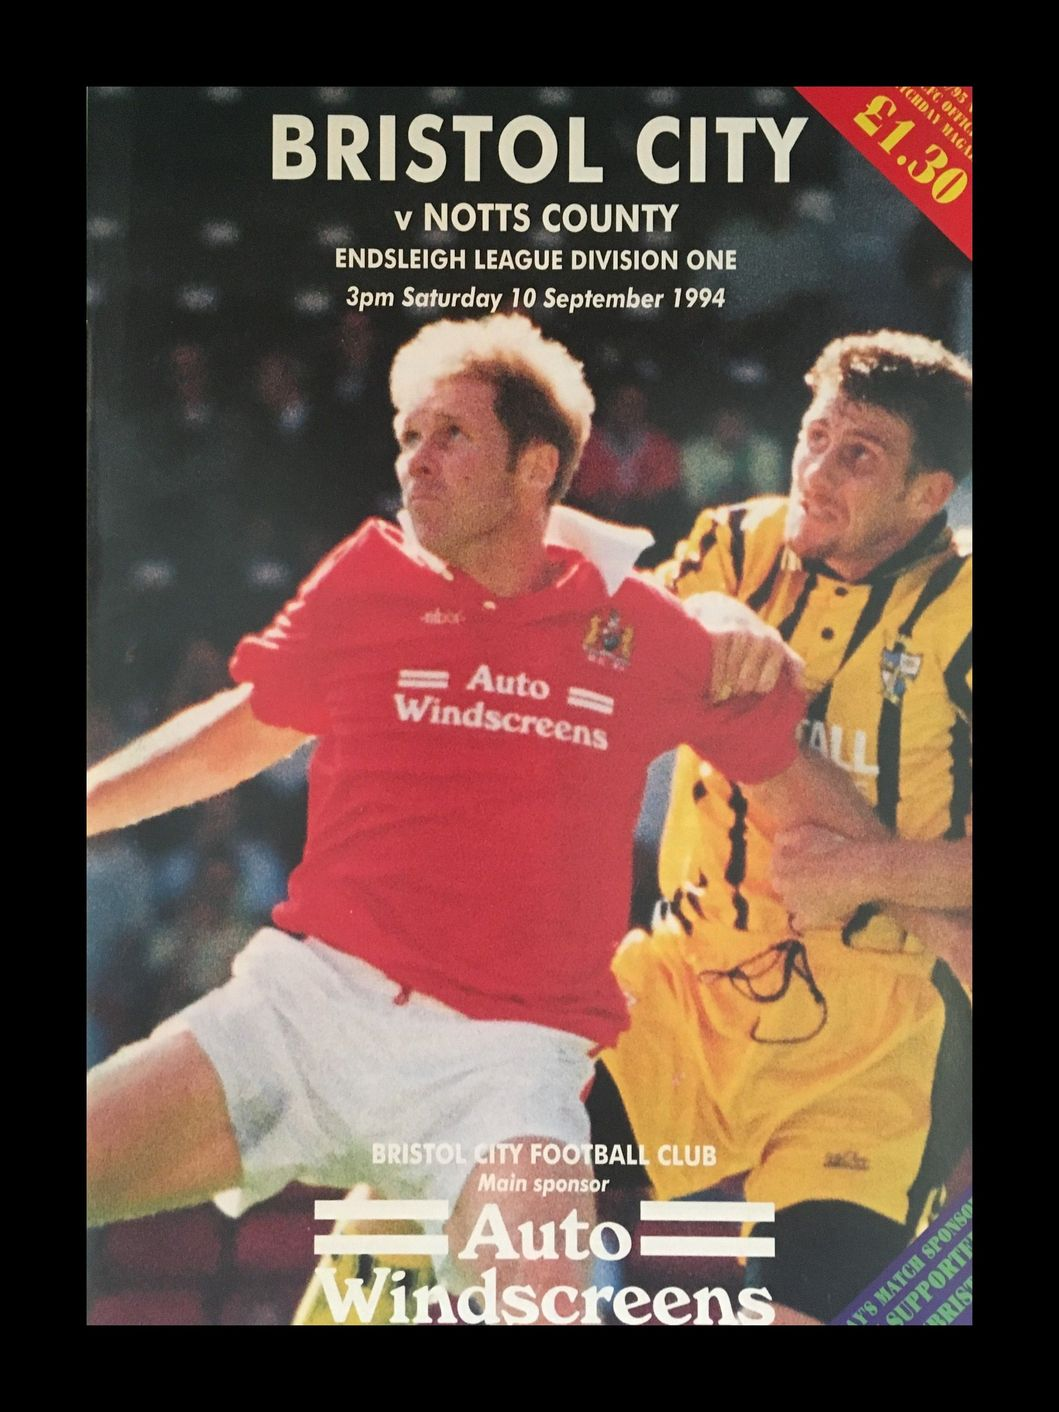 Bristol City v Notts County 10-09-1994 Programme